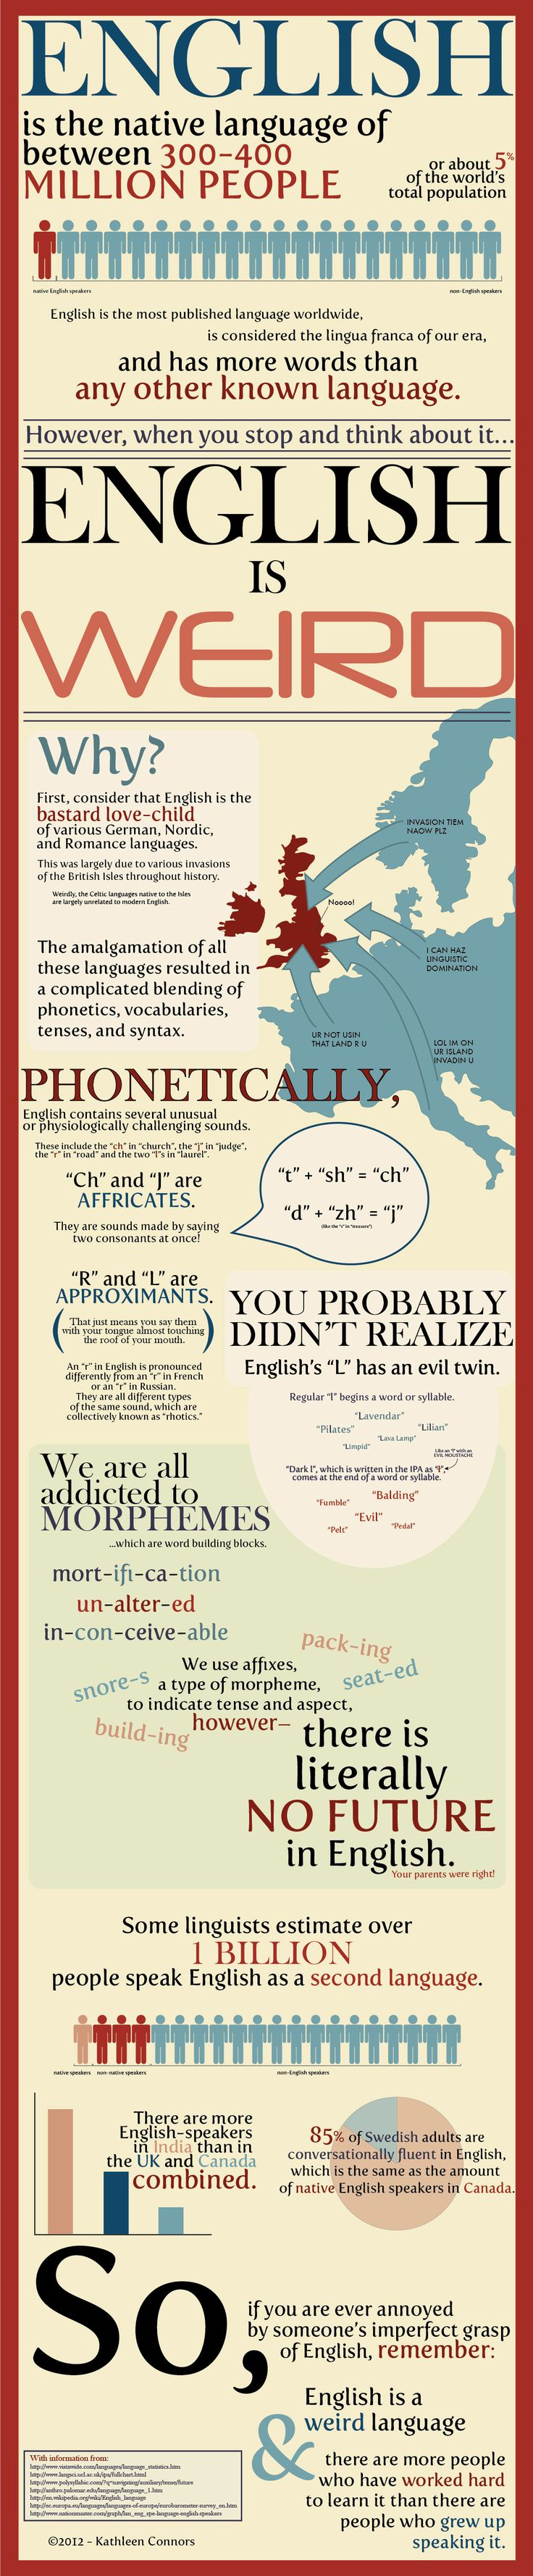 English Is Weird Infographic